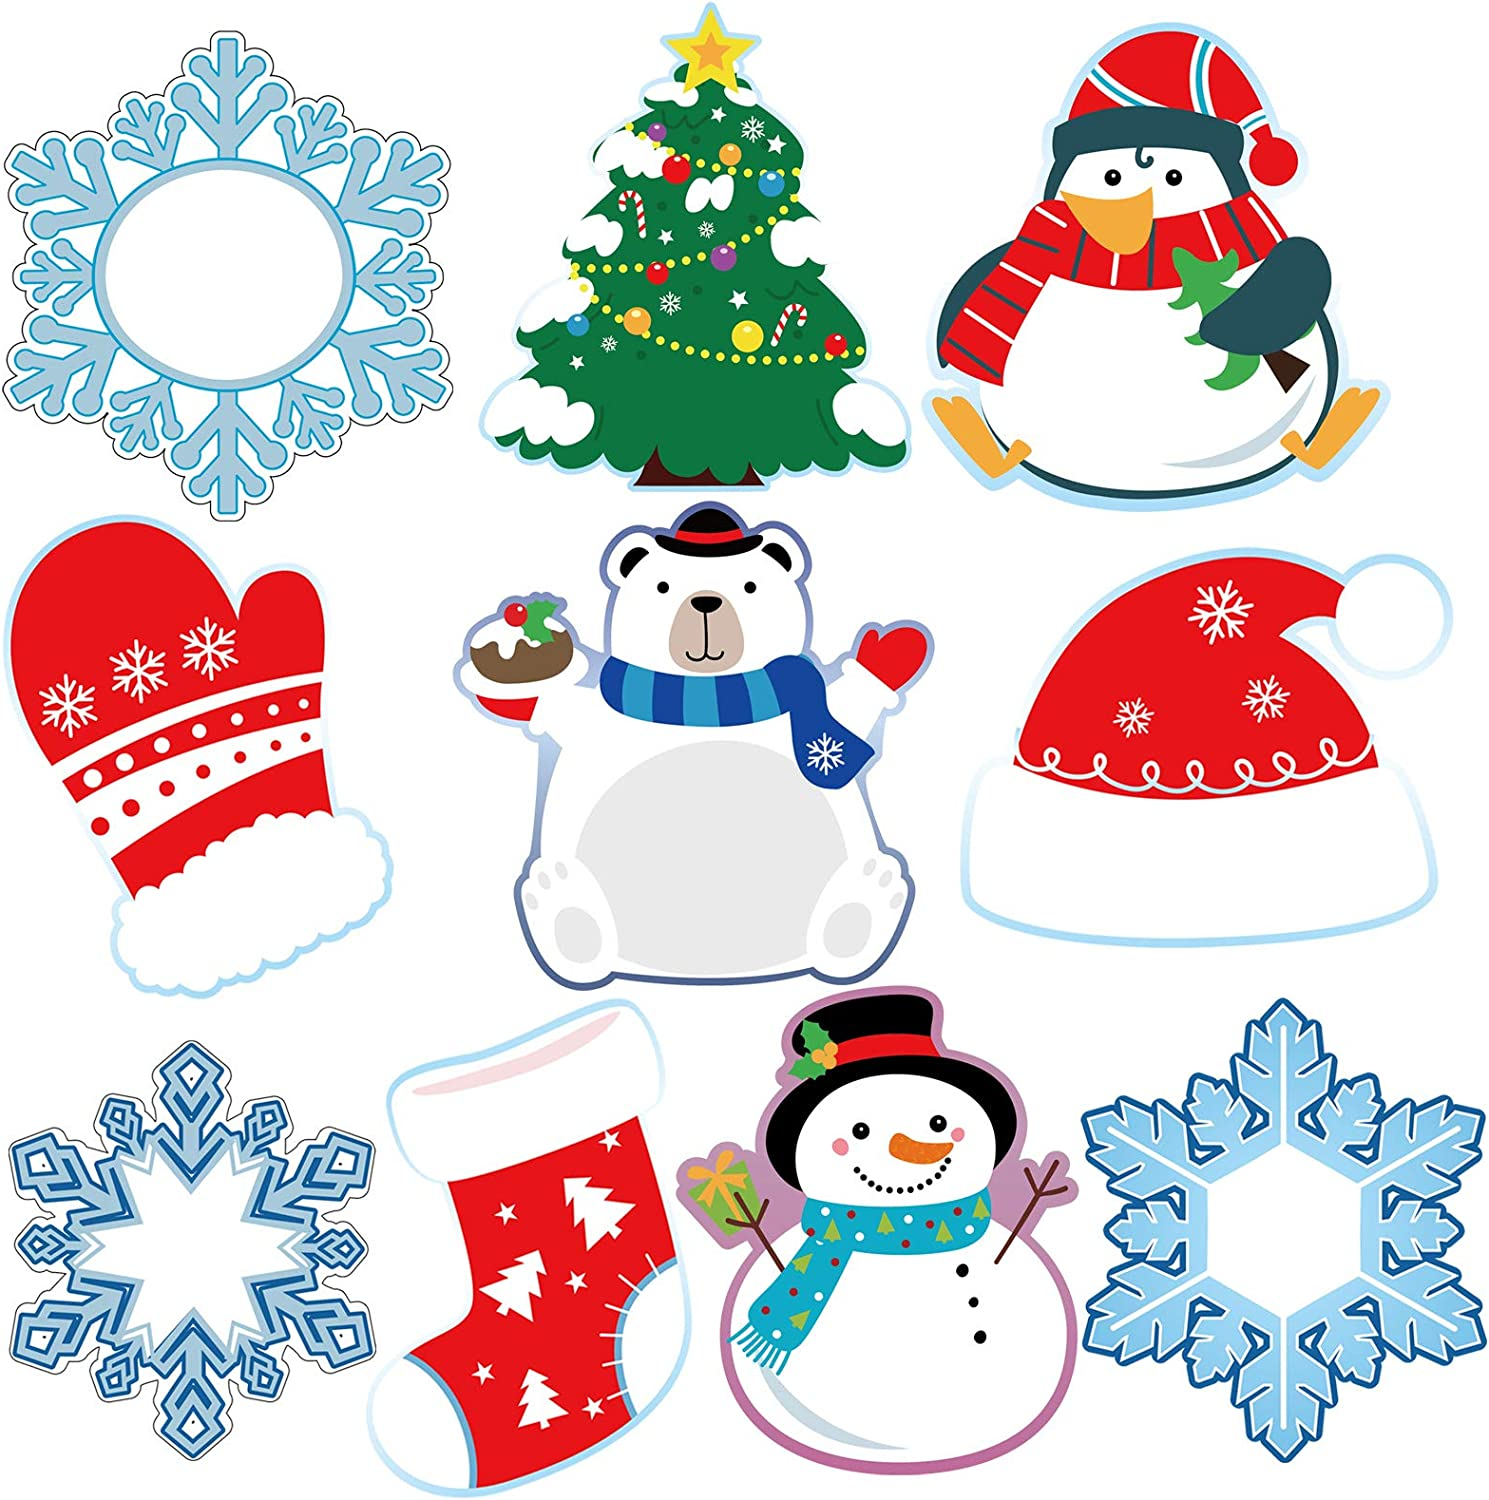 Amazon Com 50 Pieces Winter Cutouts Snowflake Penguin Snowman Classroom Decoration Colorful Christmas Party Decorations Supplies For Bulletin Board School Theme Office Products